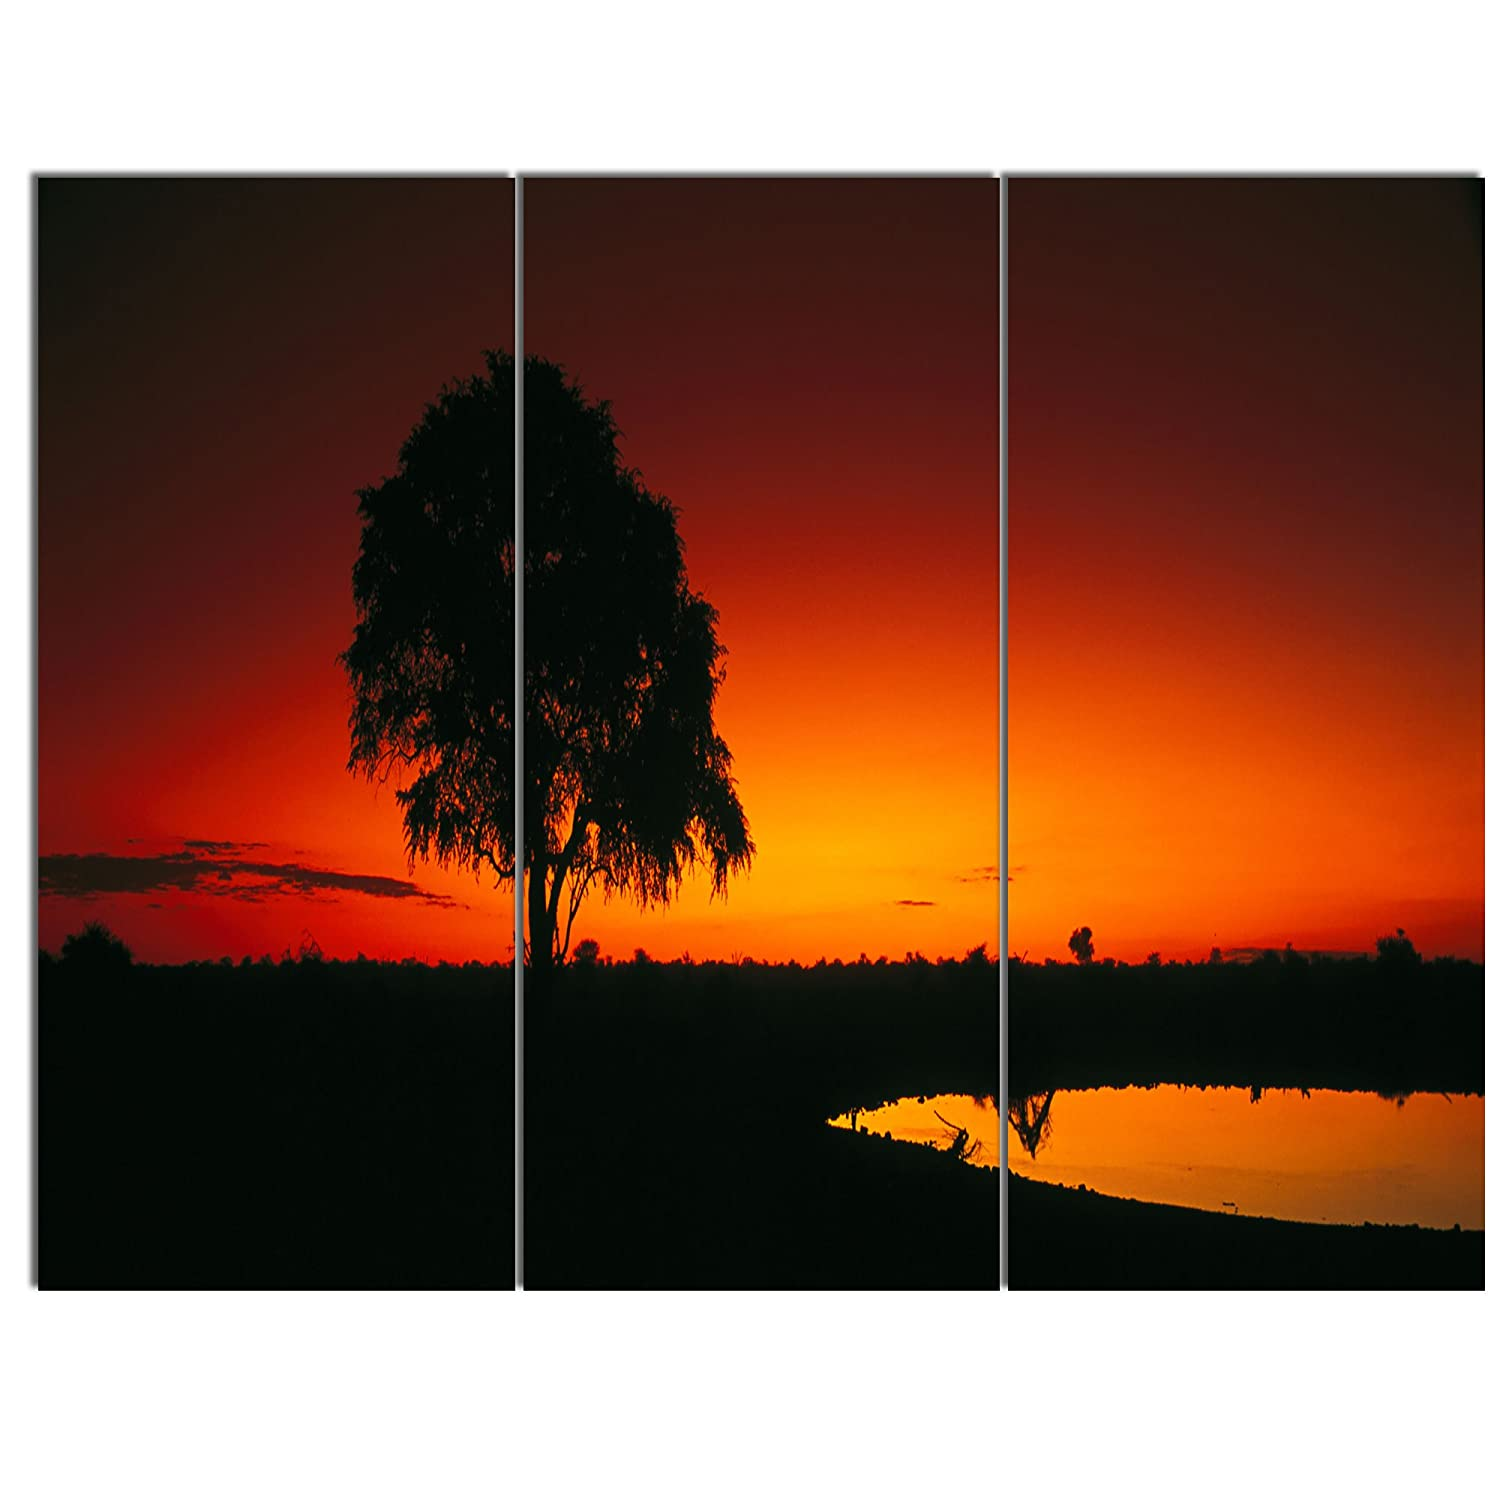 Extra Large African Landscape Canvas Art 83x32-7 Equal Panels Design Art PT12966-83-32-7P Sunset View in Tanzania